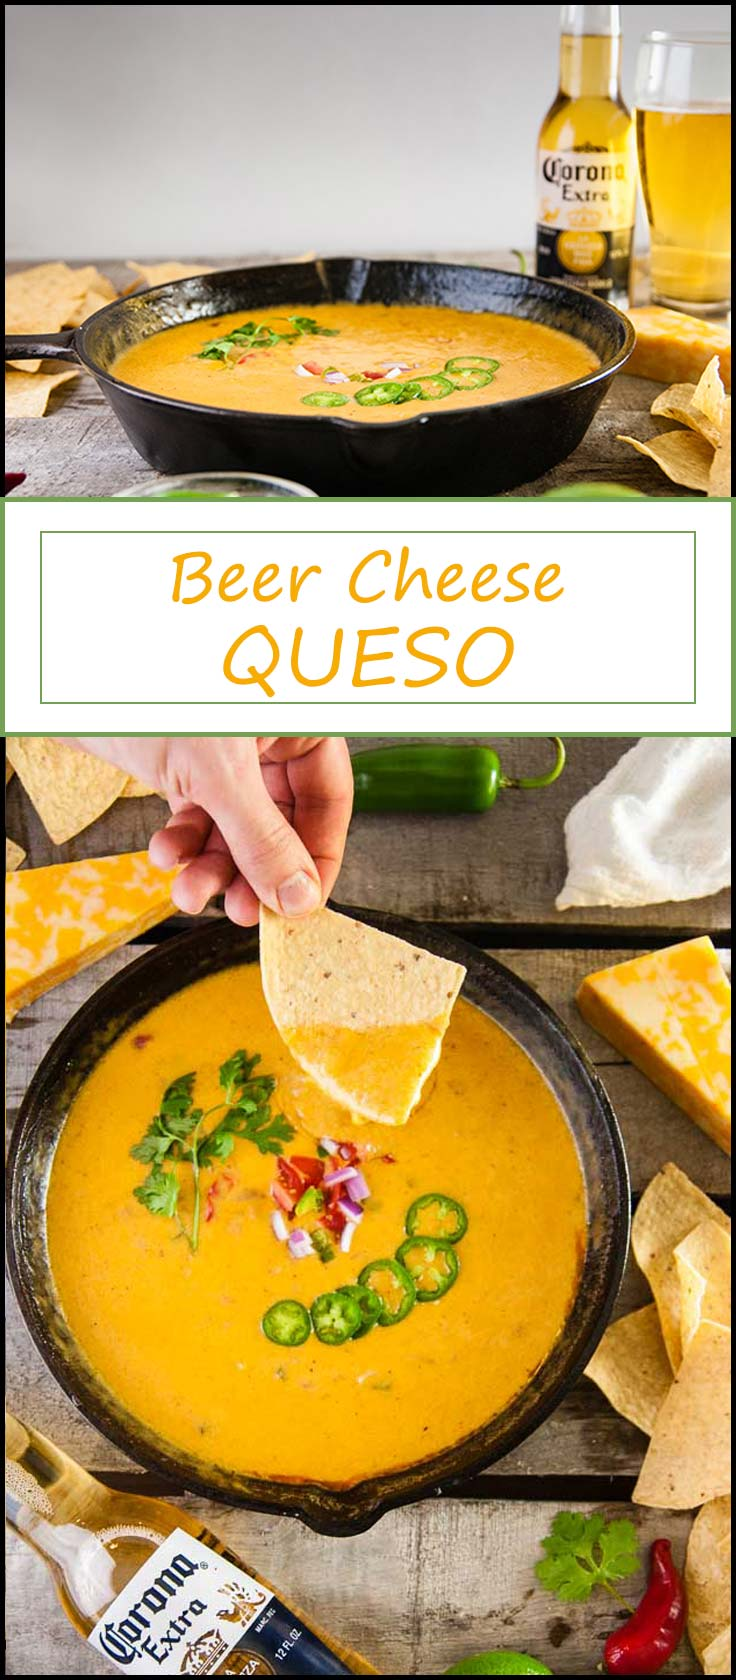 Easy recipe for beer cheese queso perfect for Cinco de Mayo, tailgating, or entertaining from www.seasonedsprinkles.com